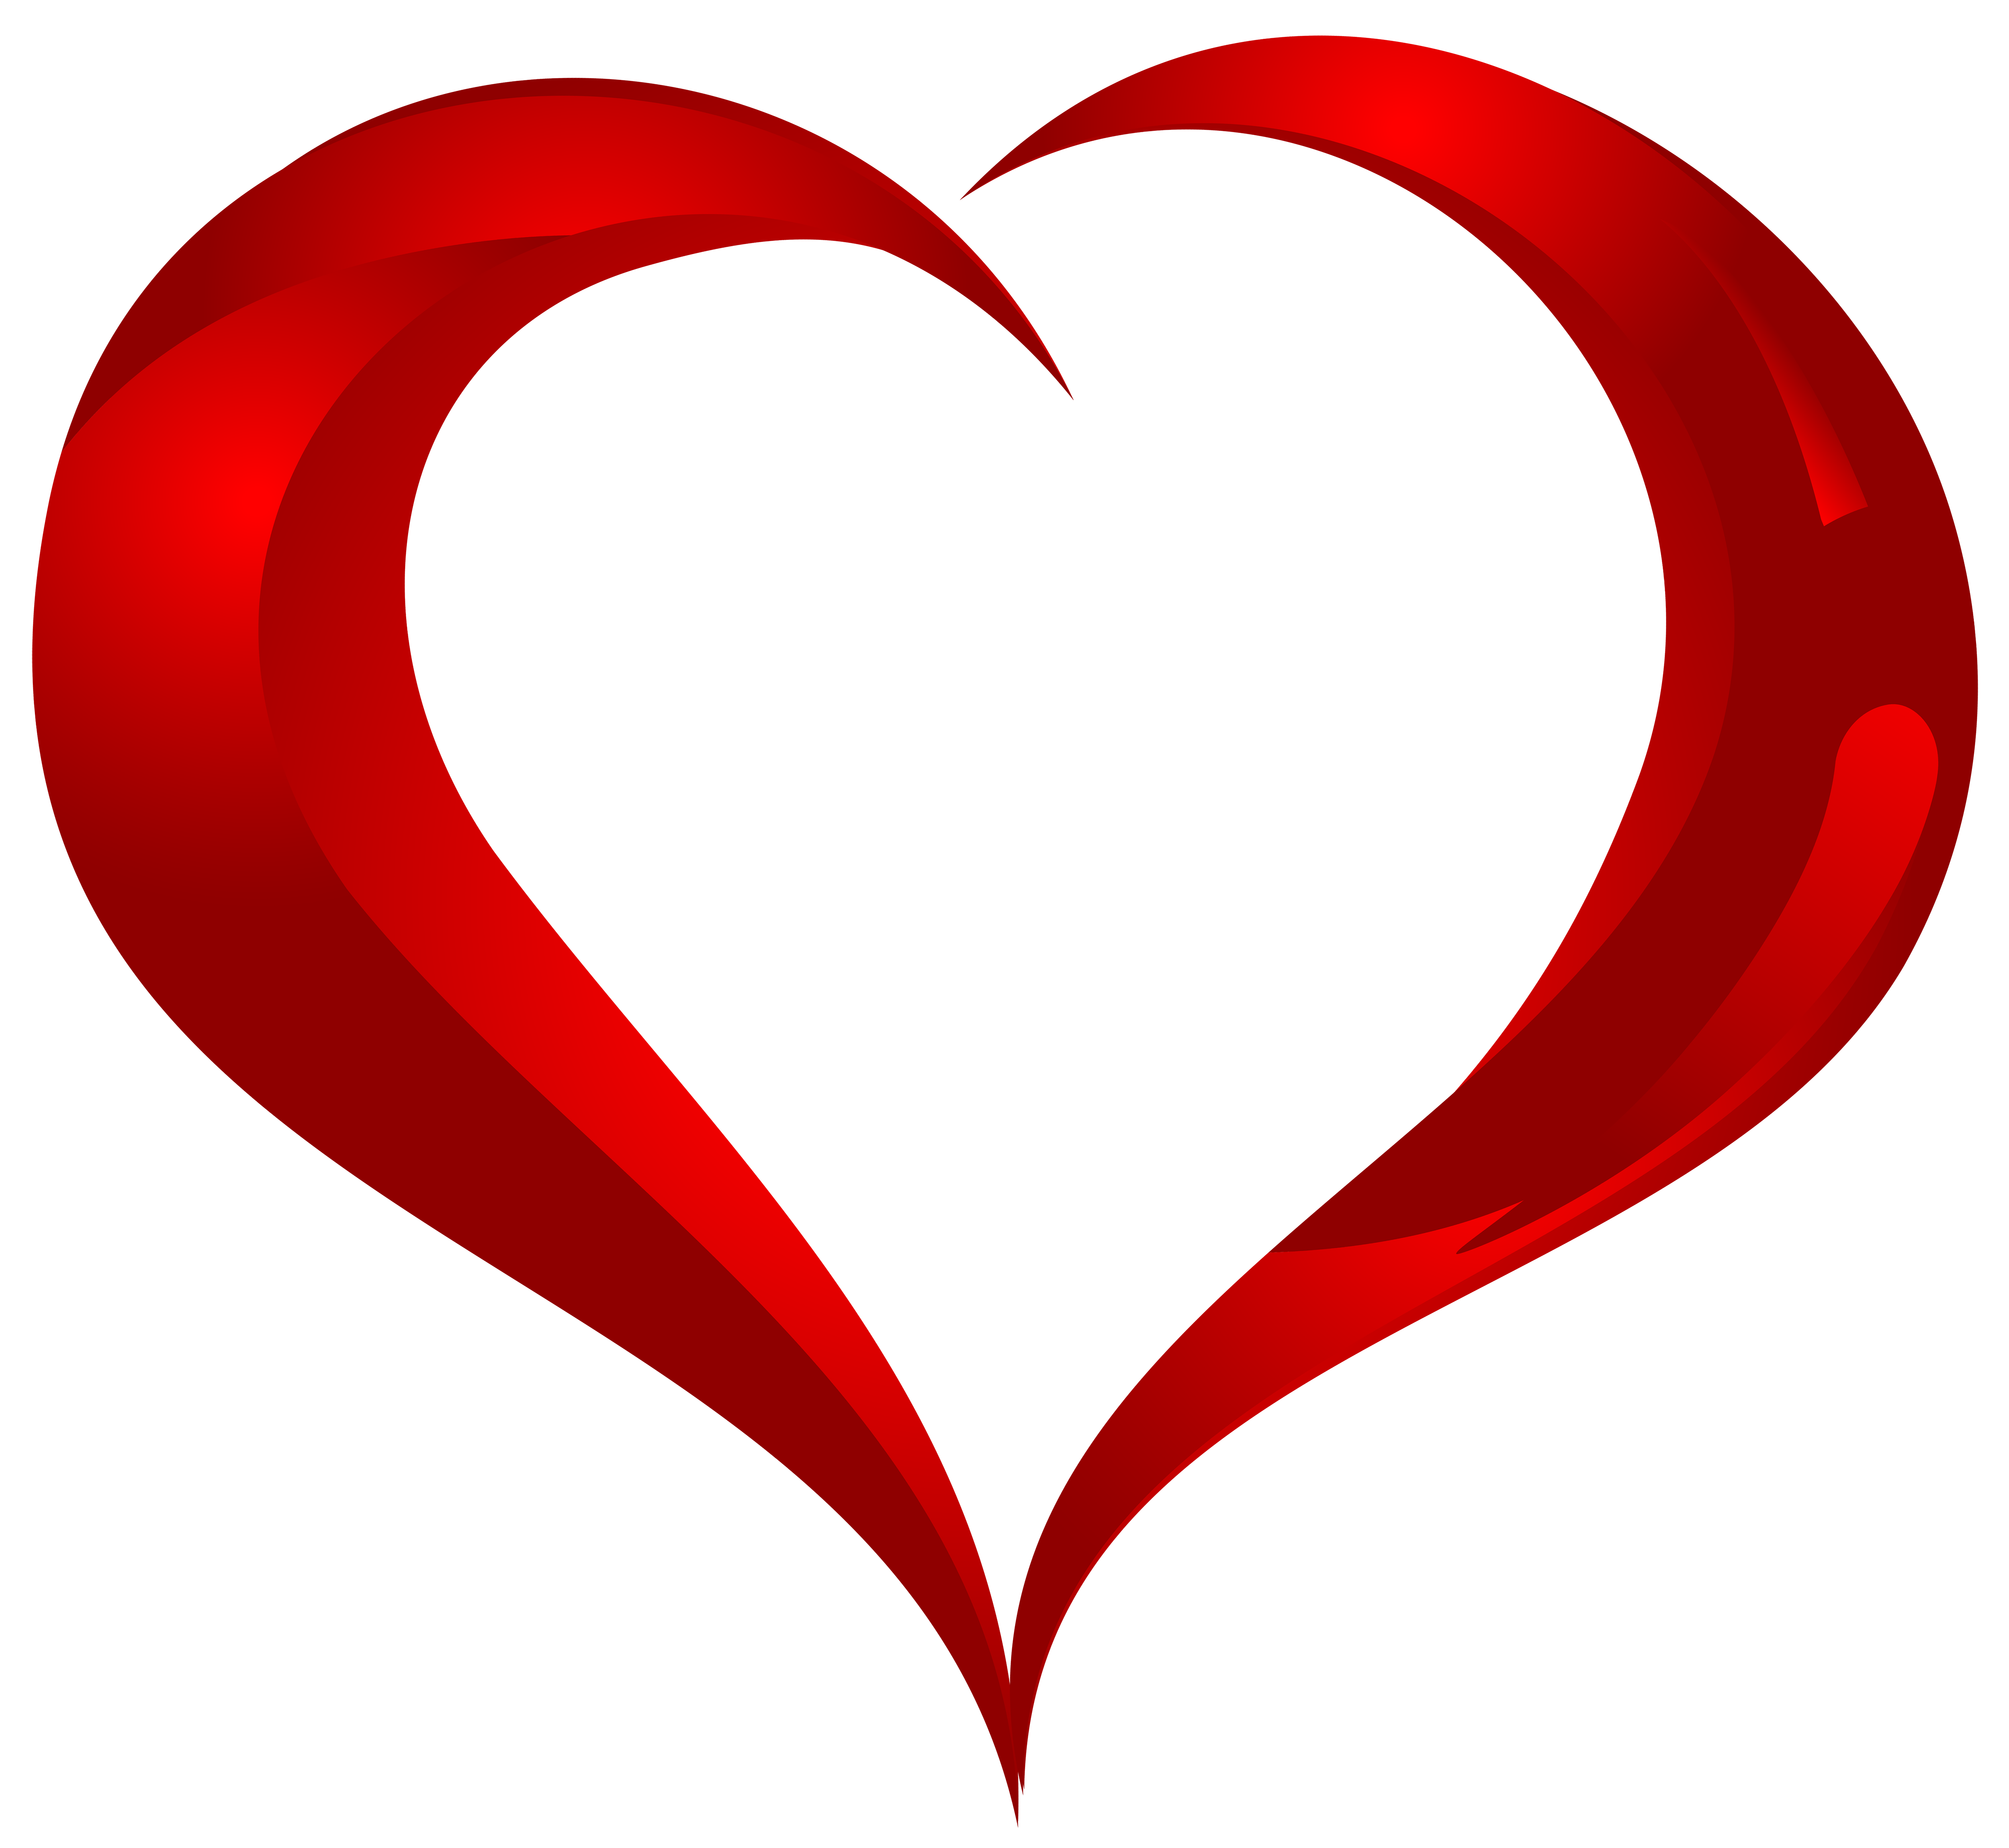 Worry clipart no fear. Beautiful heart png ansan